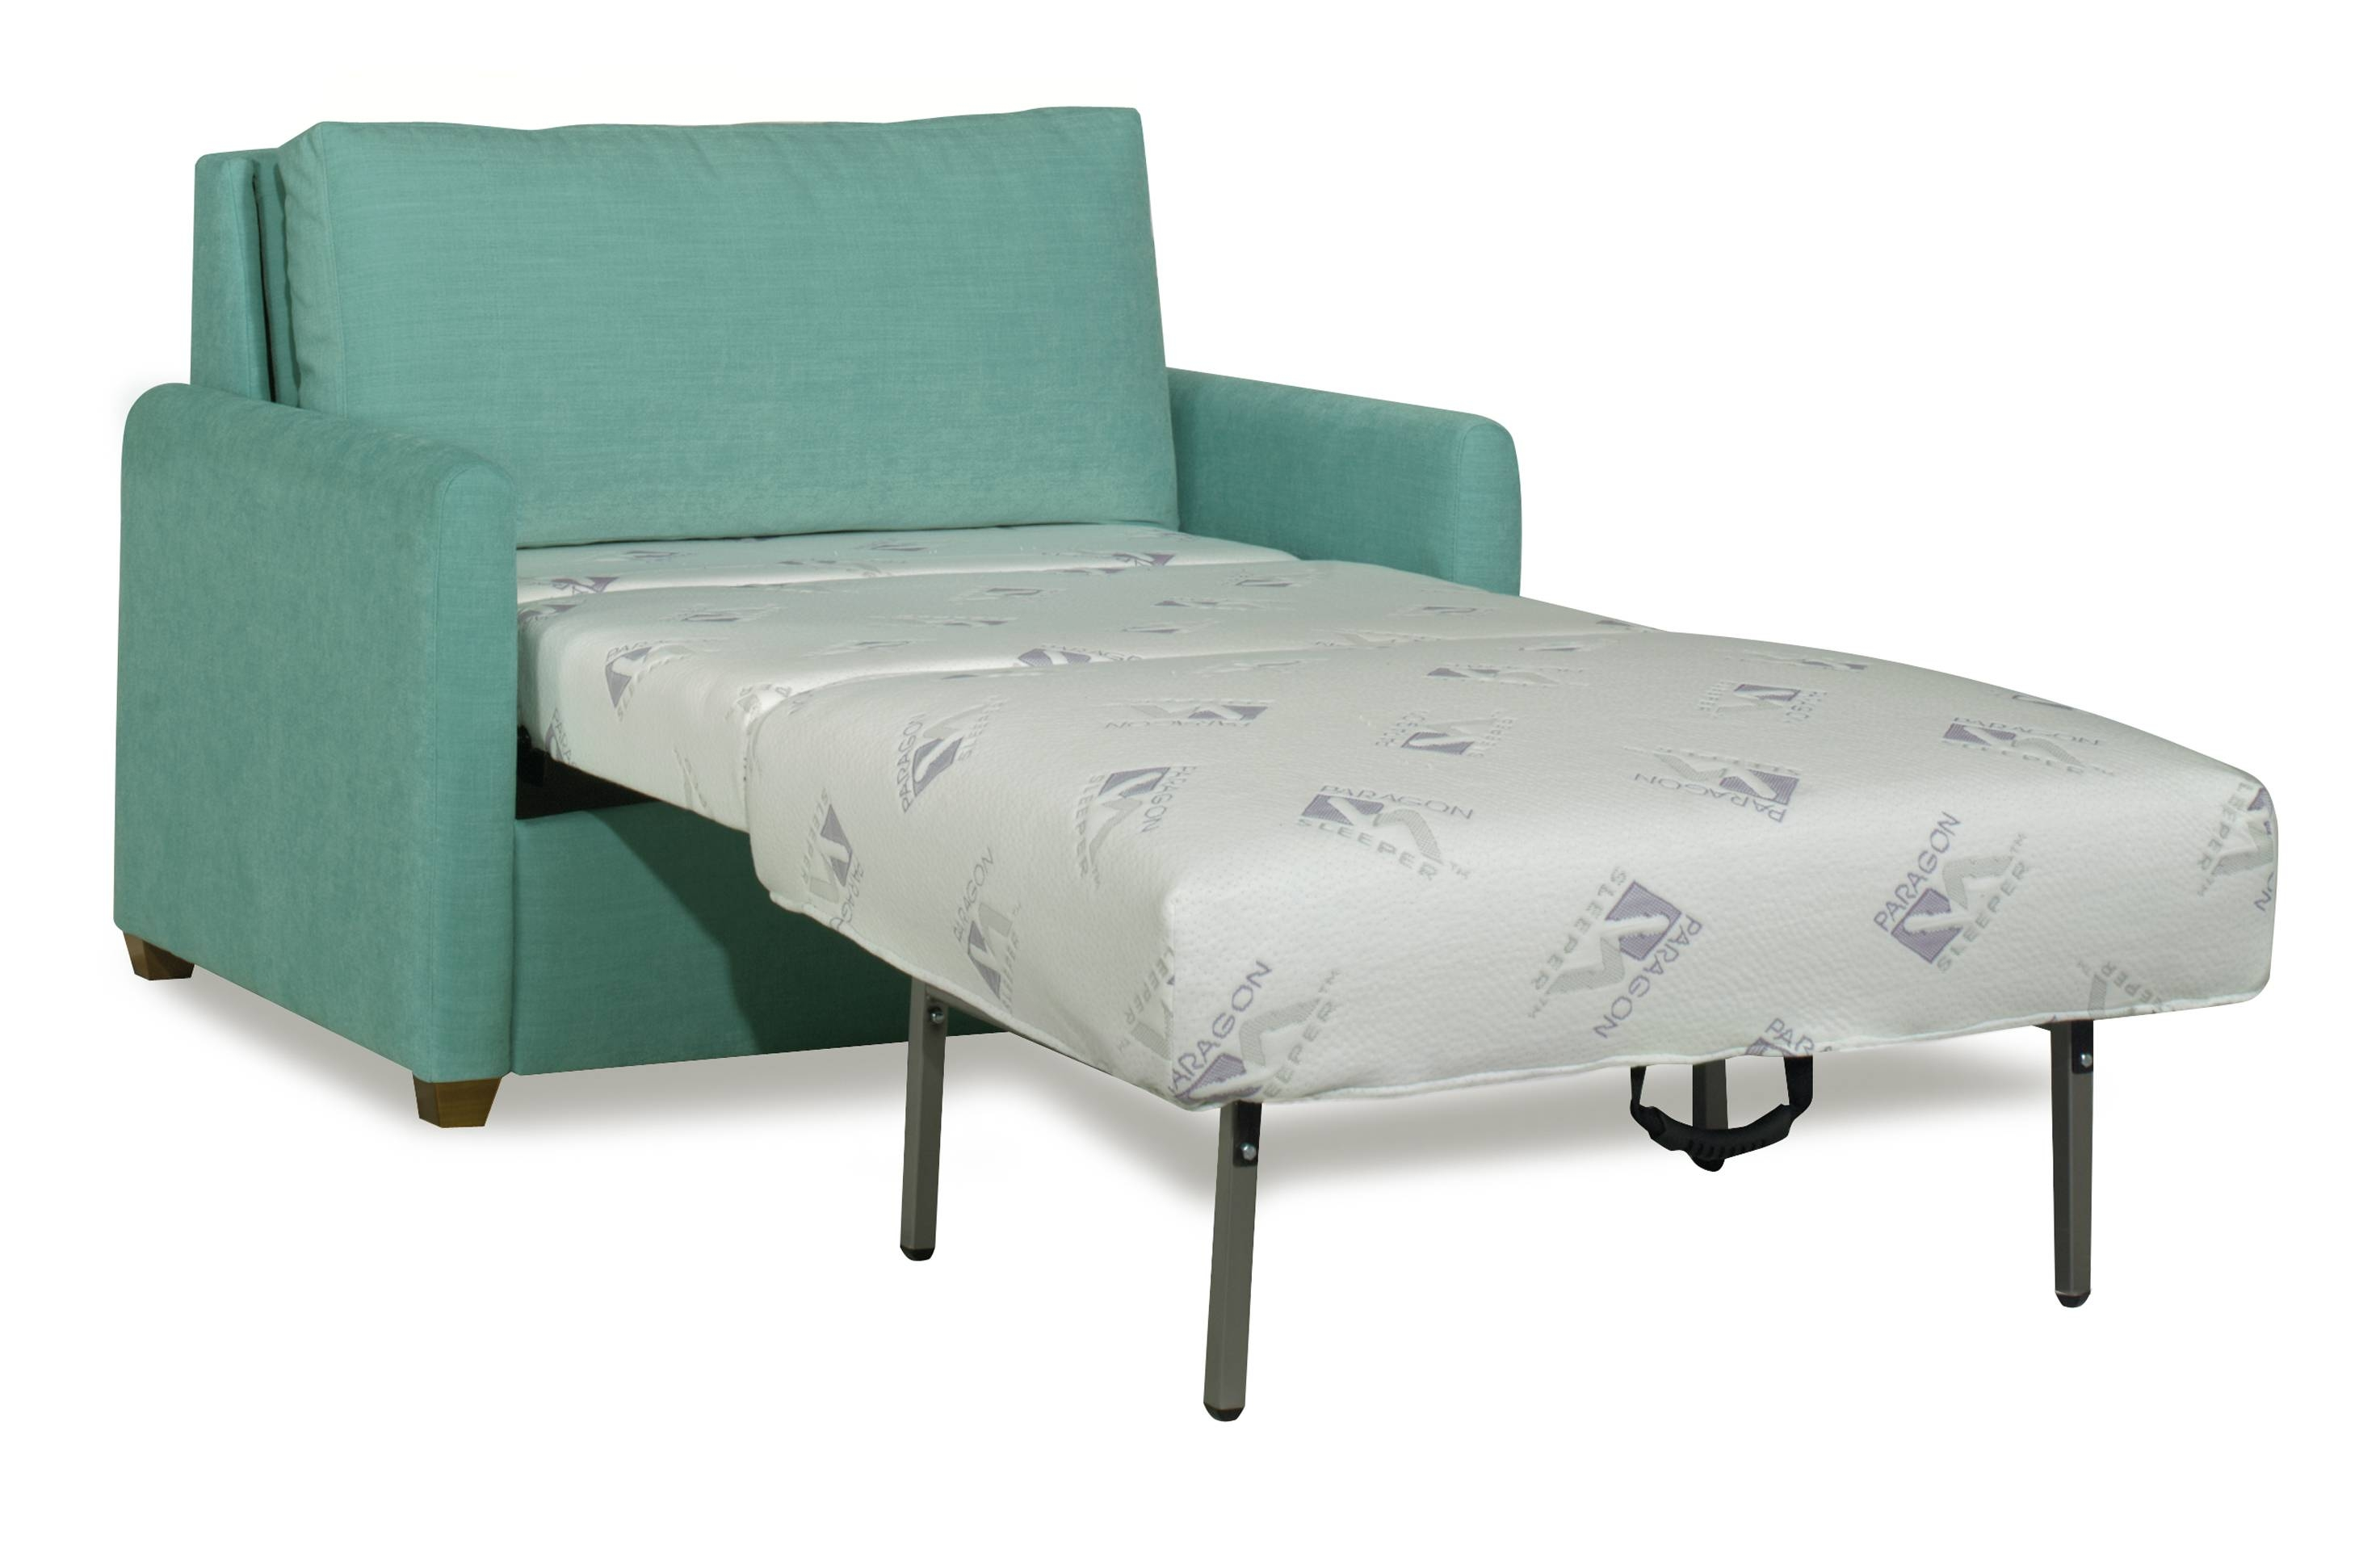 Delighful Sleeper Chair Ikea Home Intended Inspiration for Loveseat Twin Sleeper Sofas (Image 5 of 30)